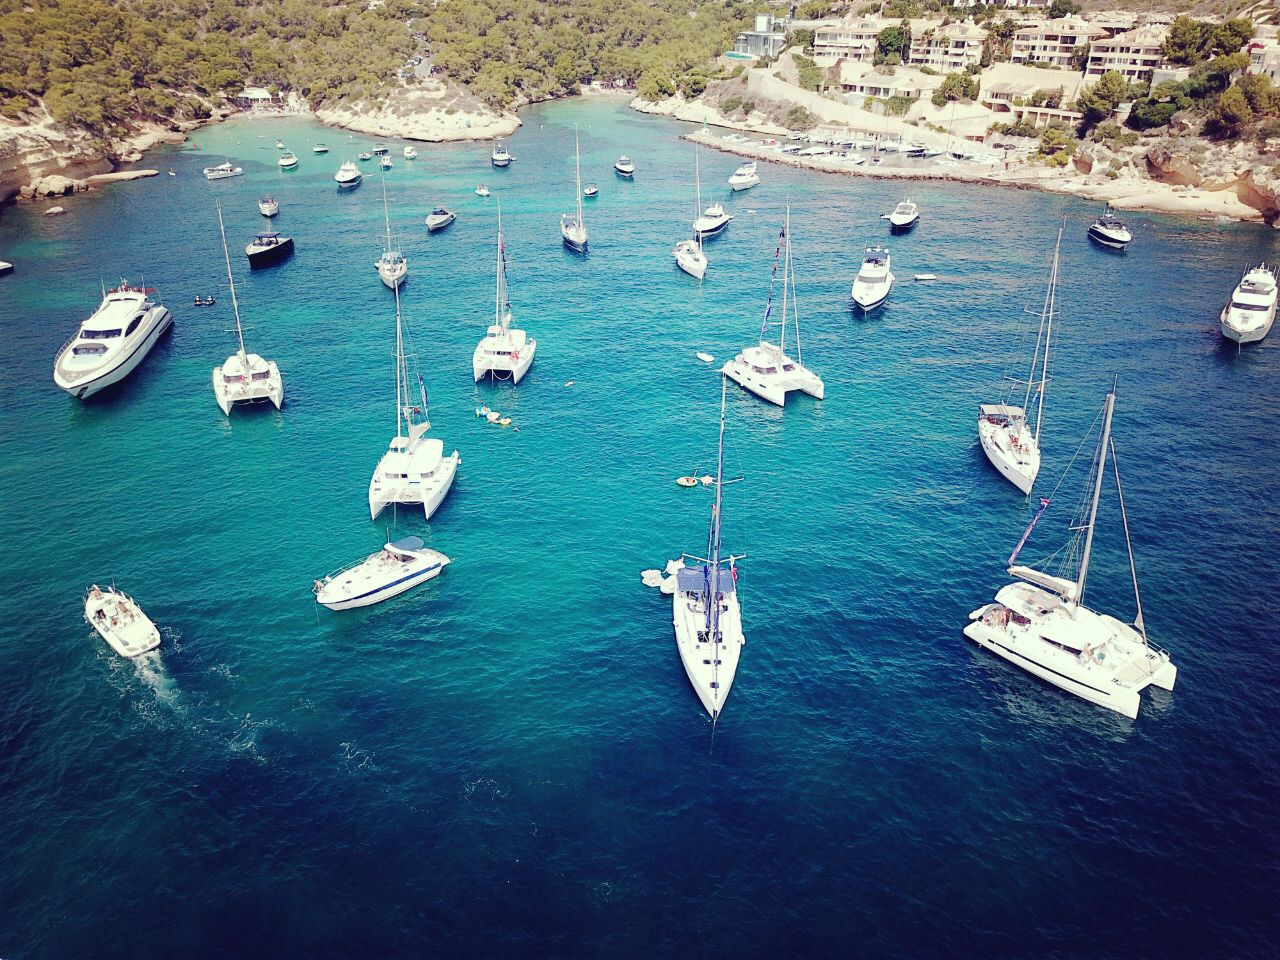 Sailing to new destinations daily made it interesting for us to pick from a variety of activities to enjoy. I participated in a wine tasting, hiked to the top of a castle, and regularly explored the markets and shops of each town when we dropped anchor.